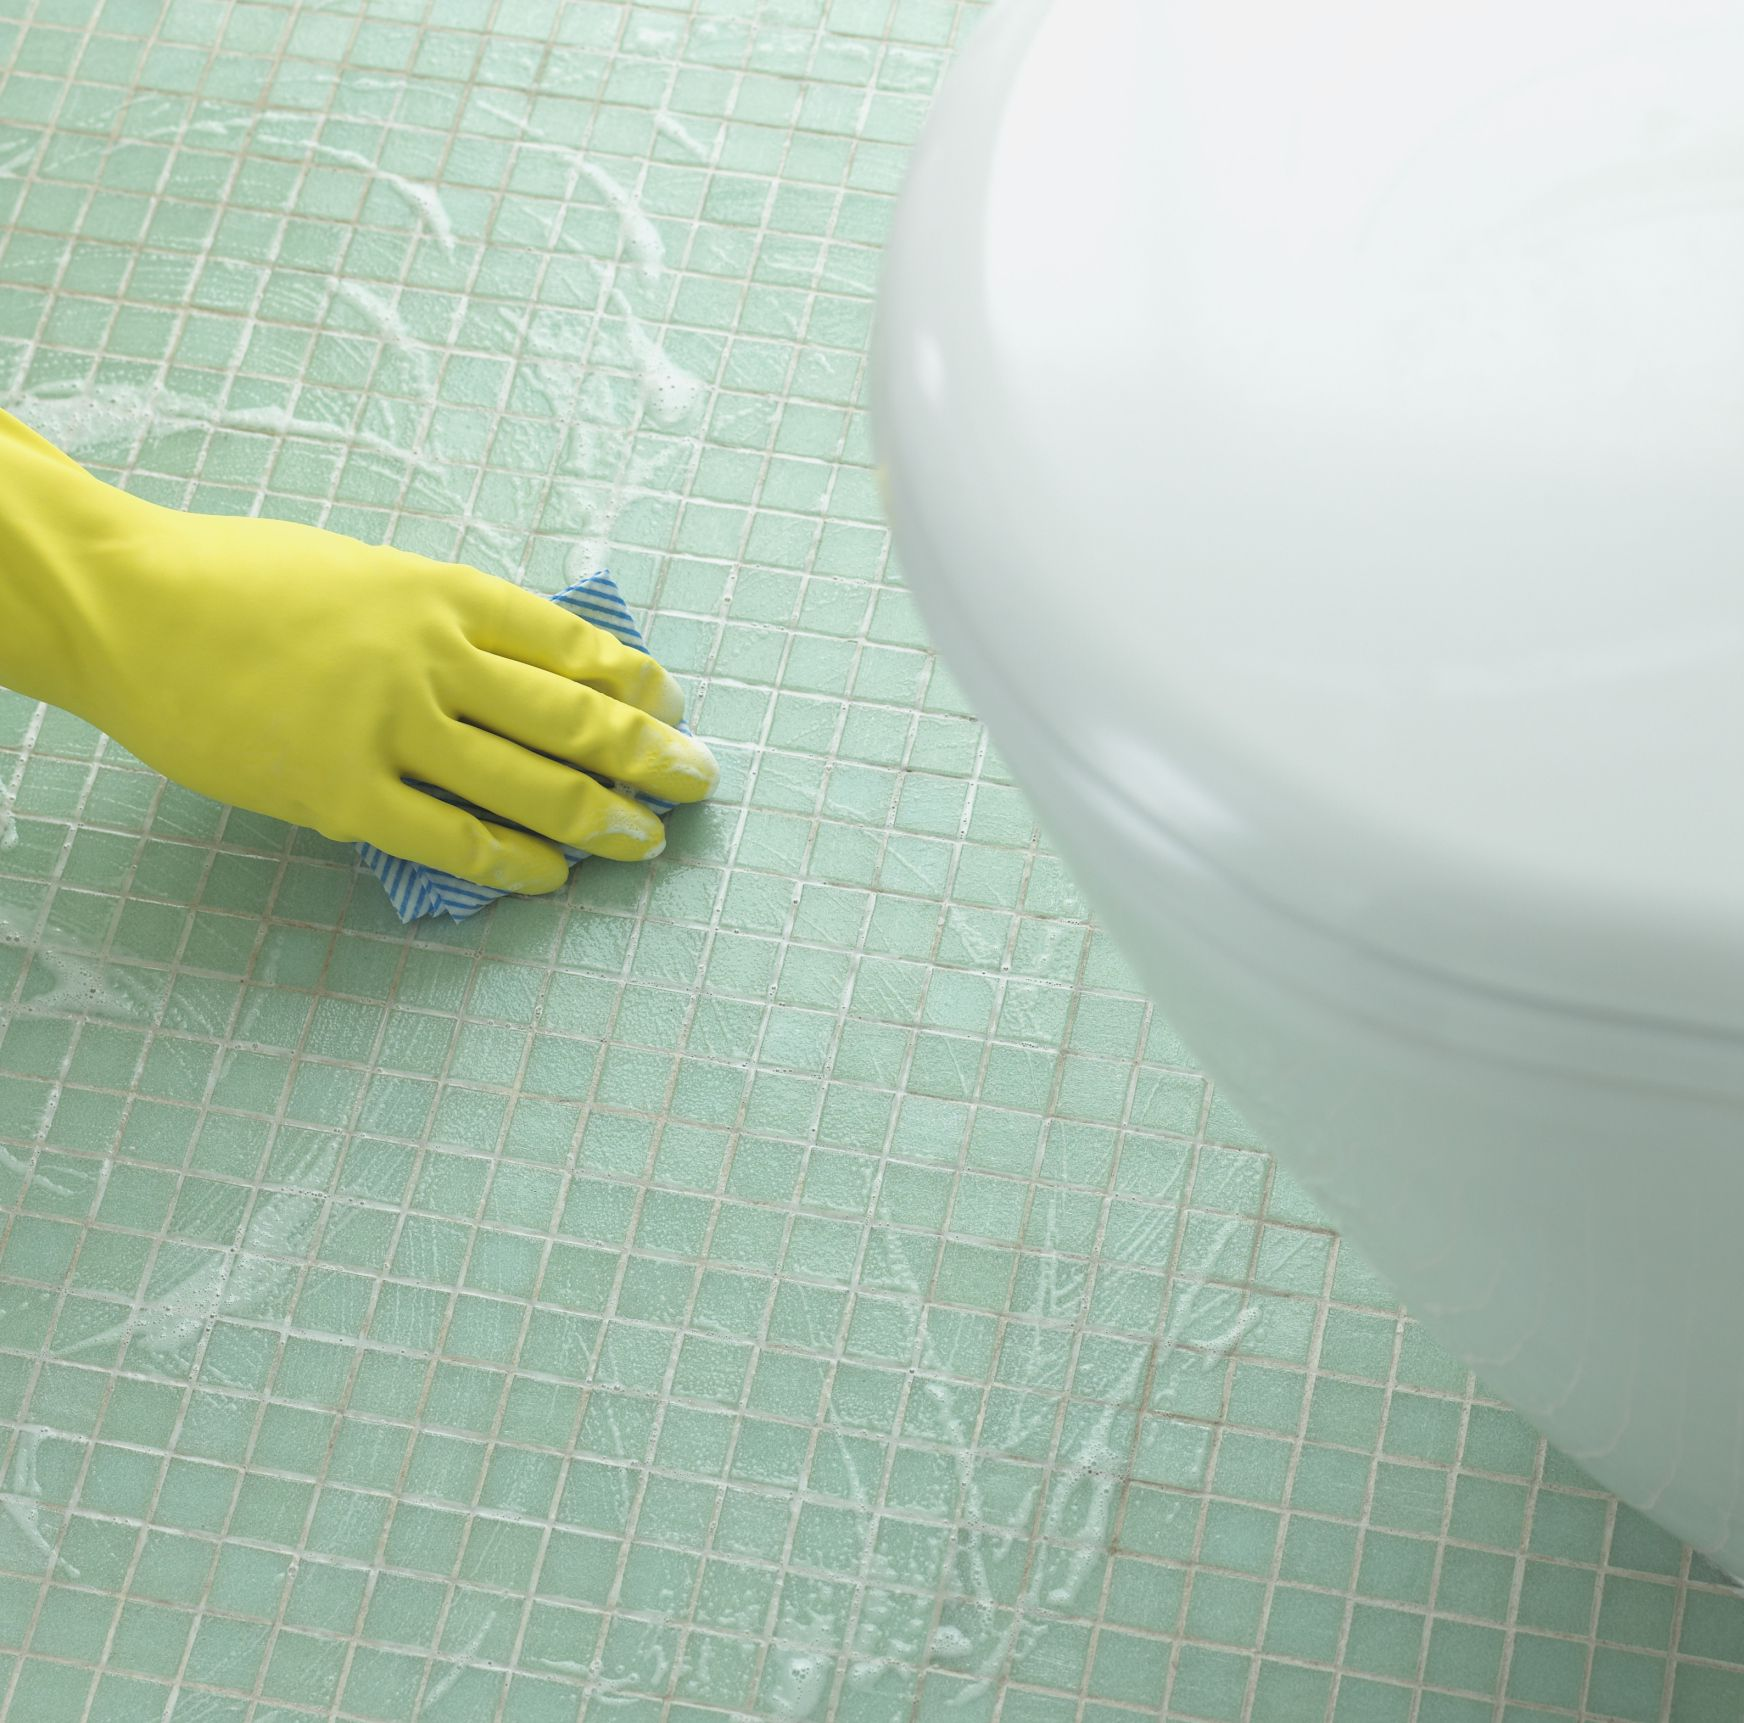 Grout Haze Cleaning Is Easier With This Method